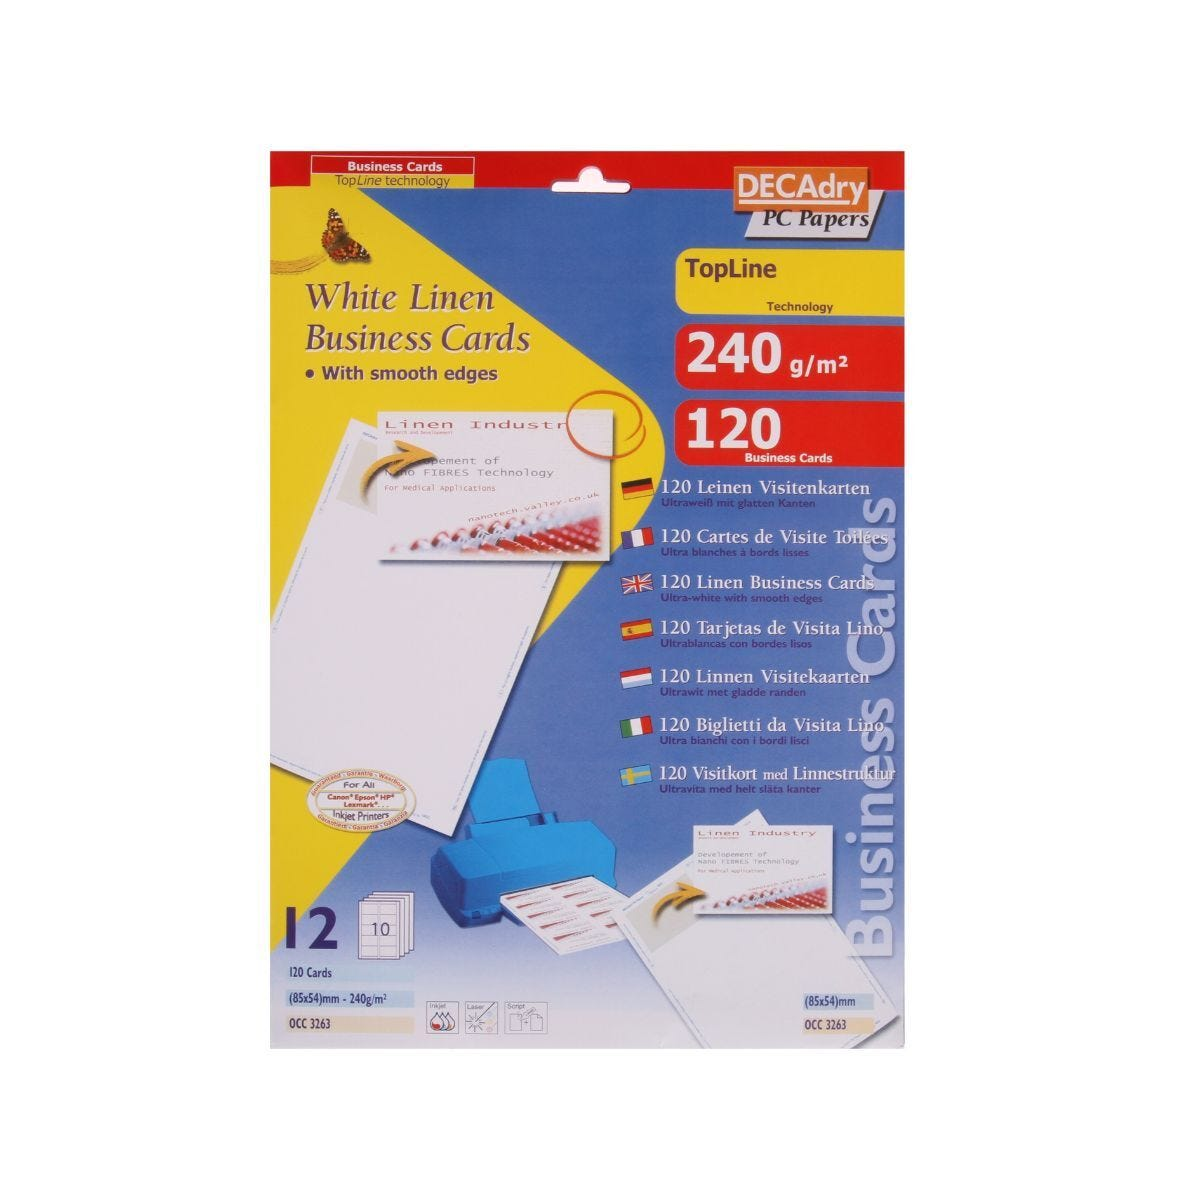 Decadry Laid Business Cards Clean Edge Pack of 120